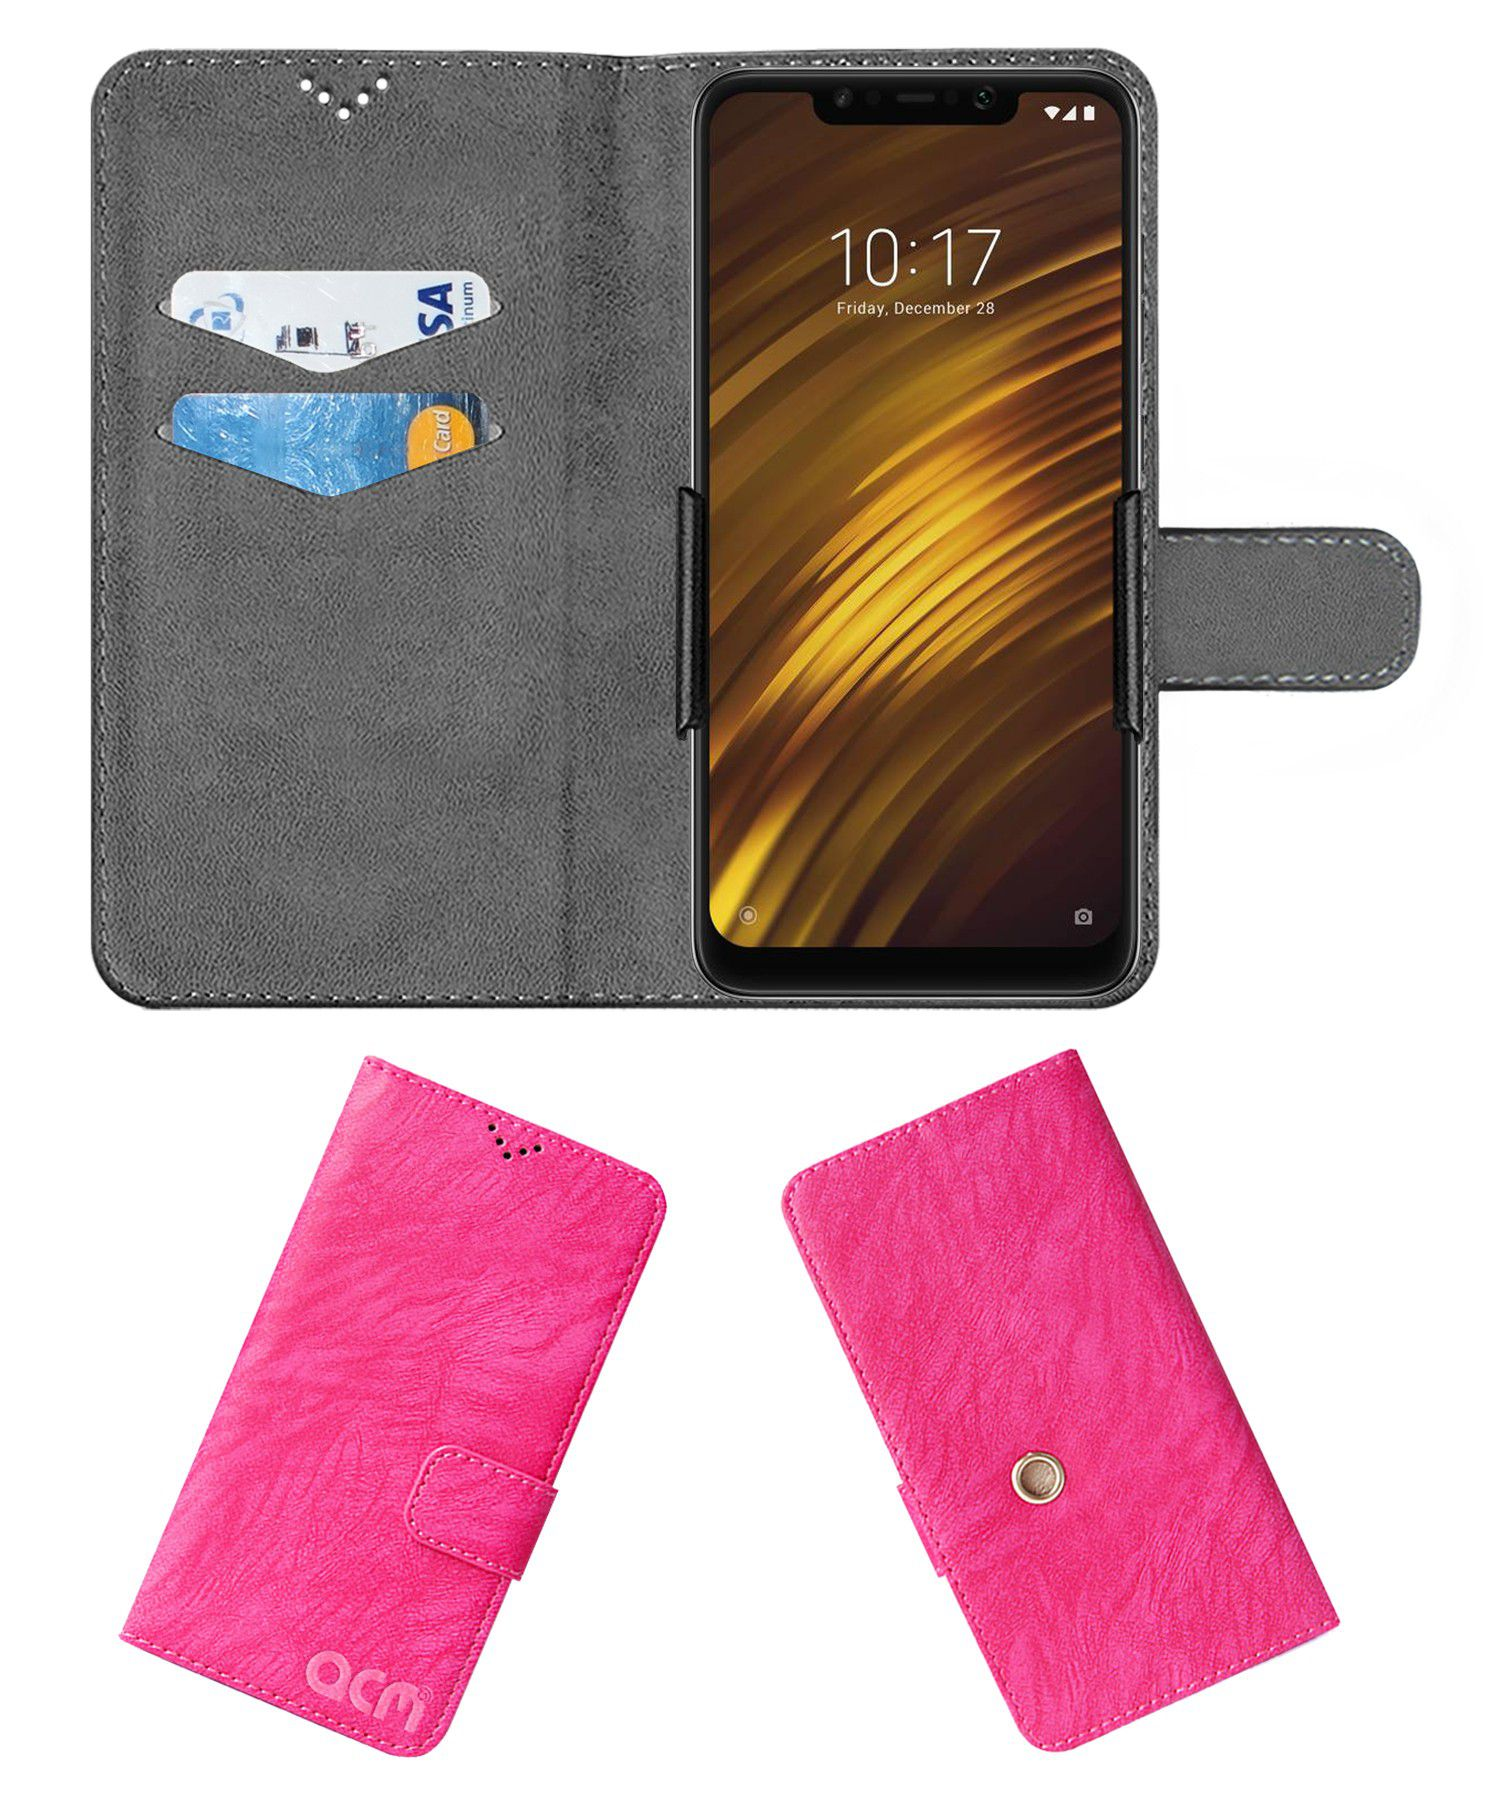 Xiaomi Redmi Poco F1 Flip Cover by ACM - Pink Clip holder to hold your mobile securely